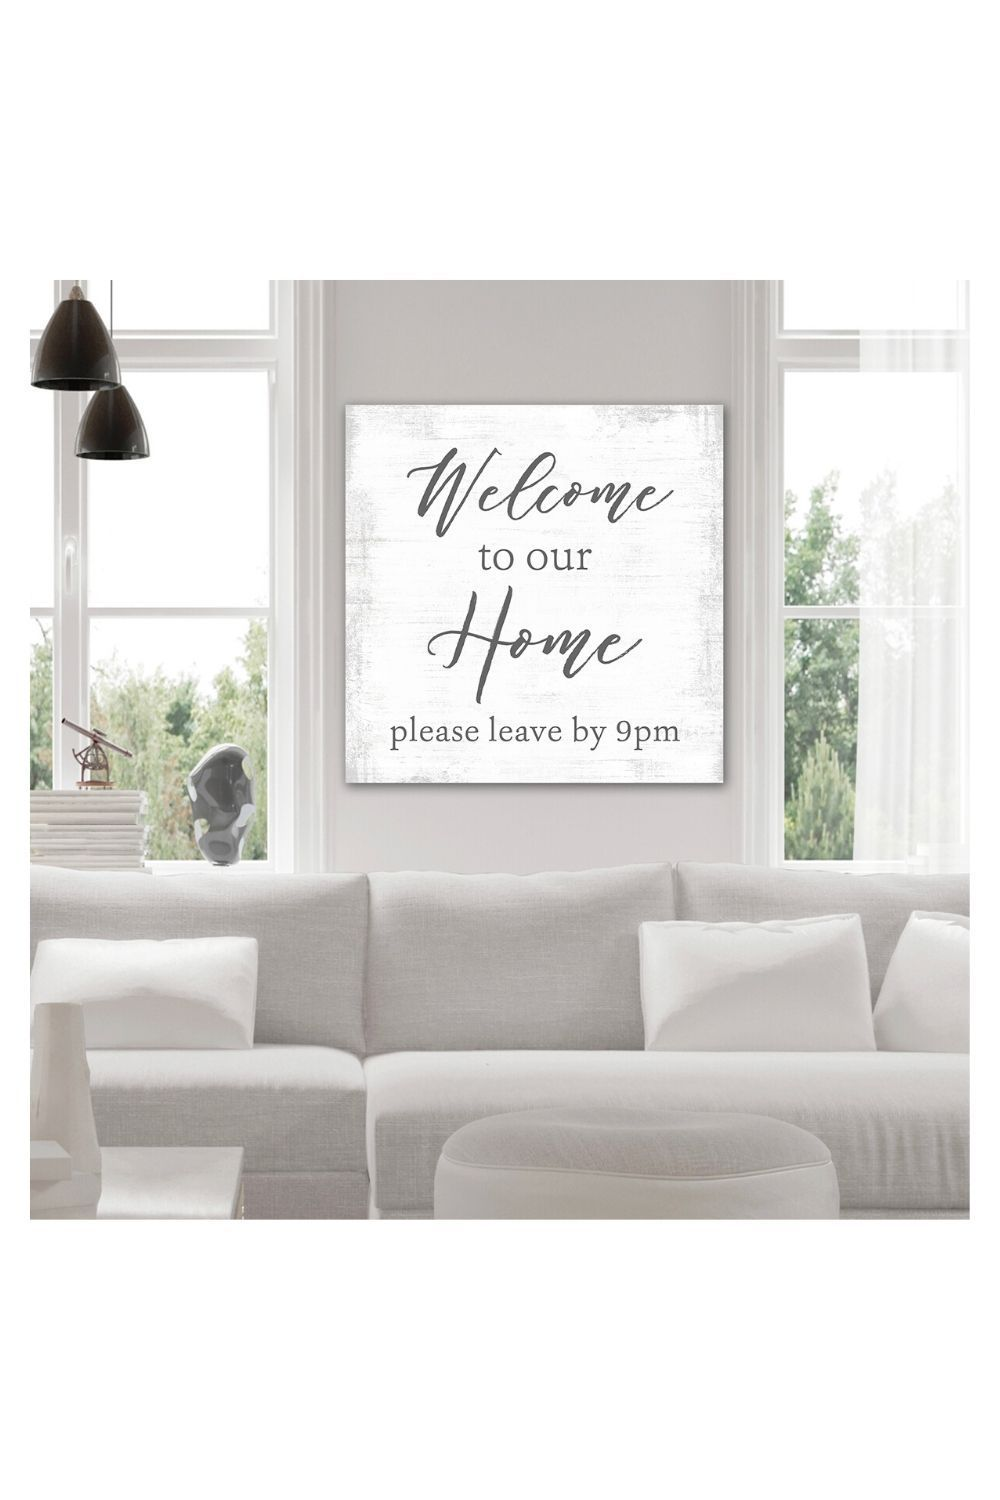 Welcome To Our Home Please Leave By 9 Sign Funny Entryway Foyer Living Room Canvas Wall Art In 2020 Living Room Canvas Perfect Living Room Canvas Wall Art Living Room